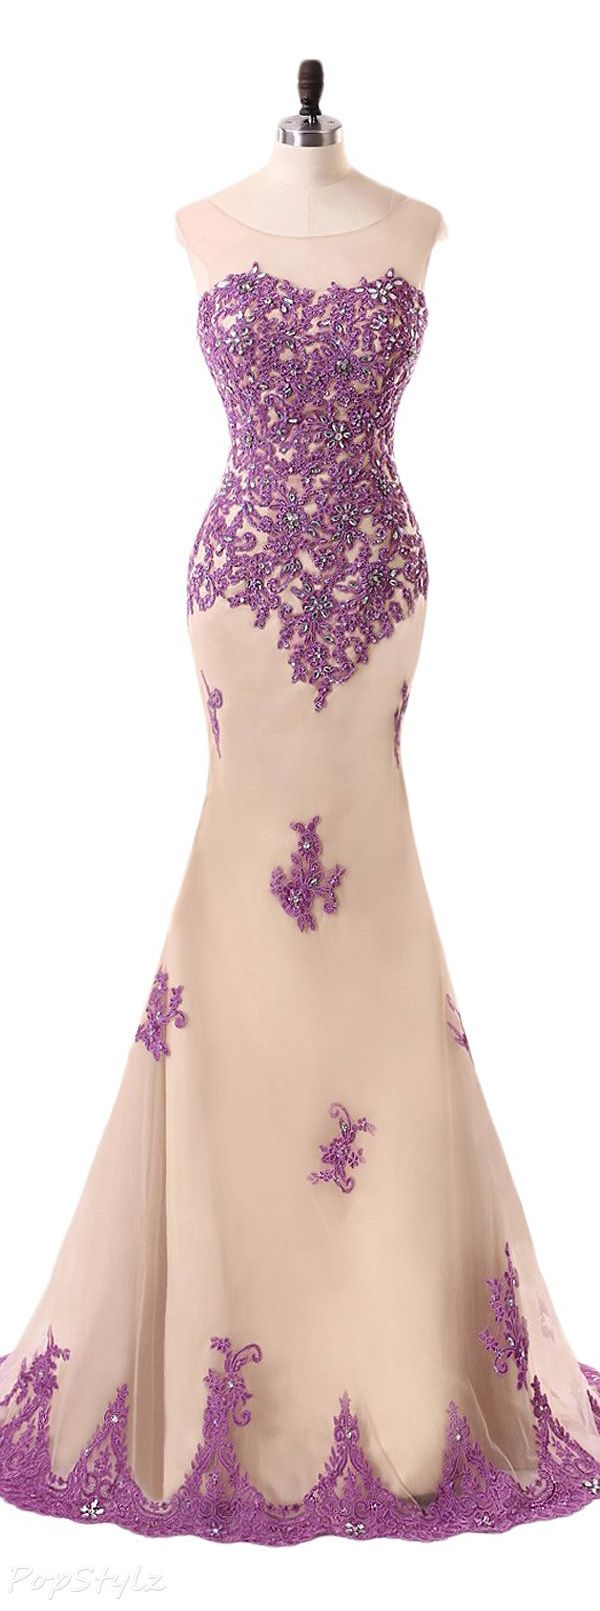 Sunvary Champagne & Purple Lace Mermaid Gown